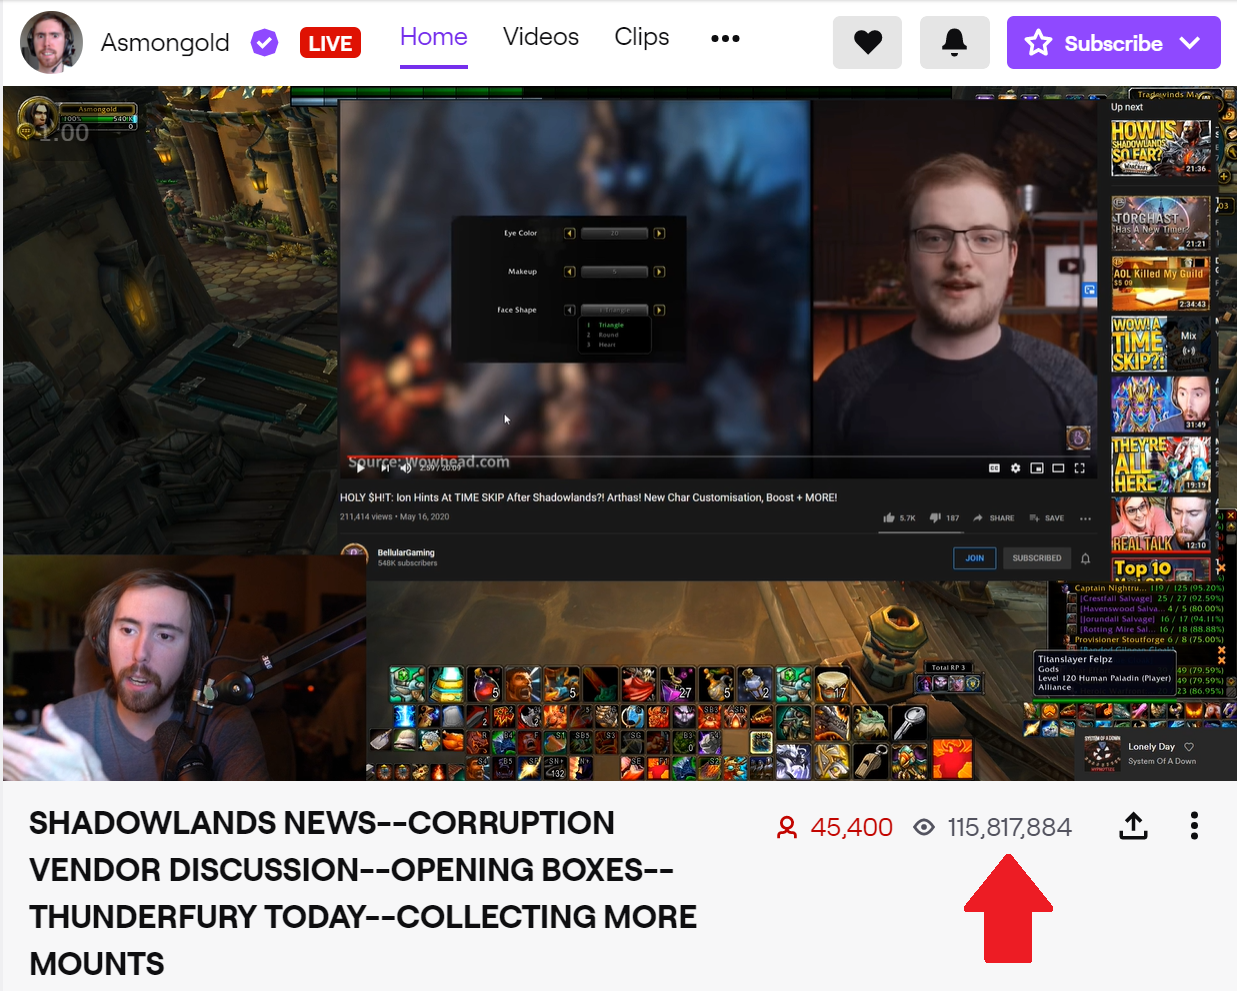 The Home tab for Asmongold shows the channel has 115M views as of 19th May, 2020.